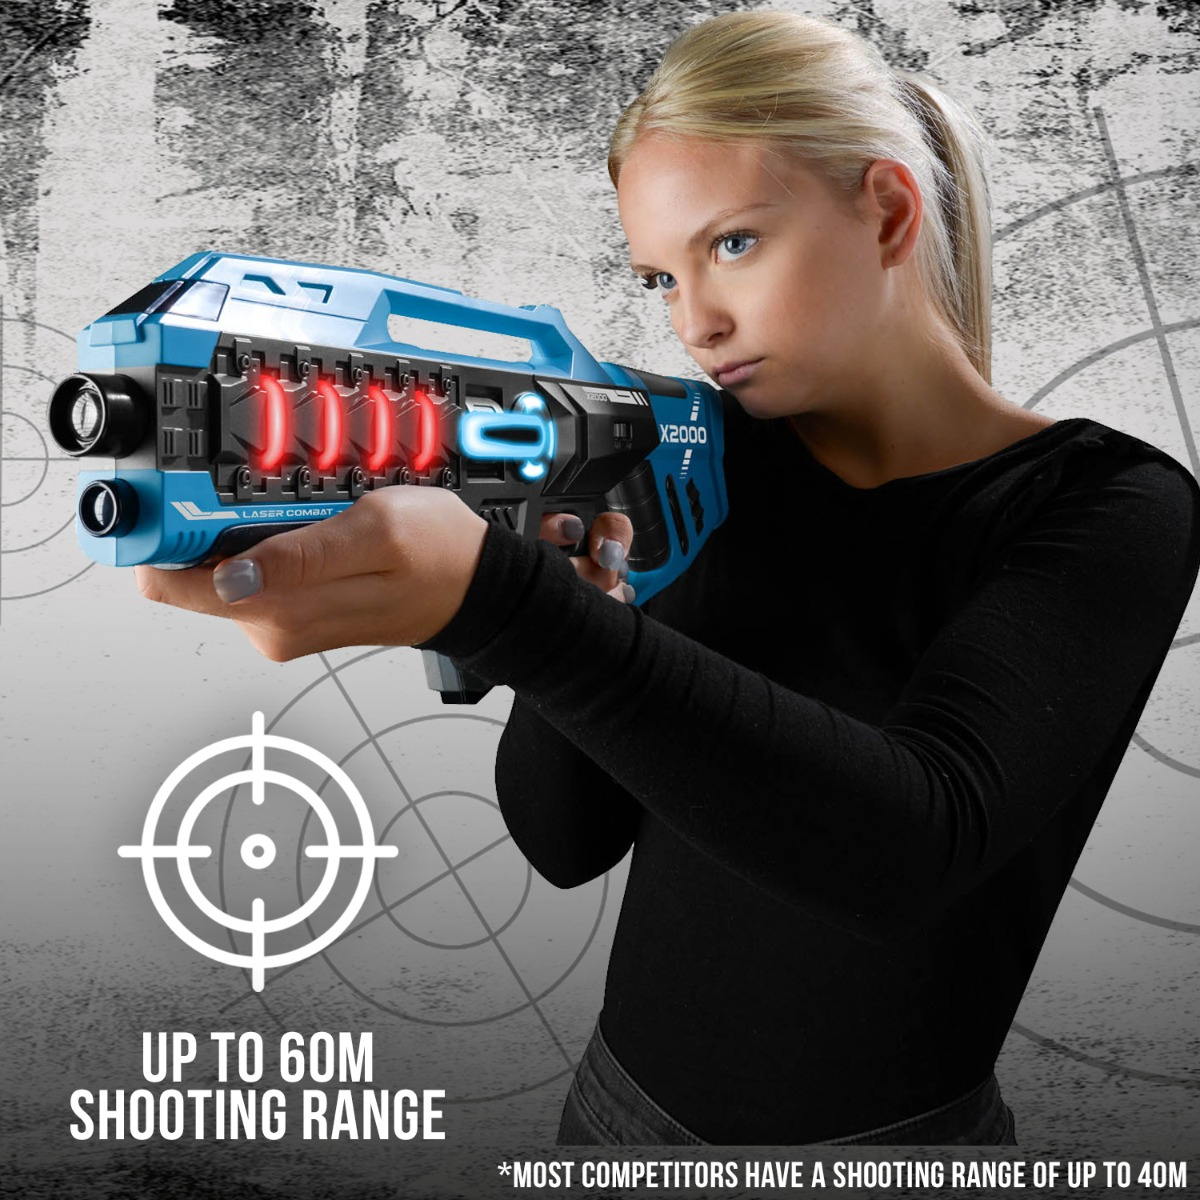 Laser-Tag-Game-Kids-Electronic-2-Blaster-Gun-Battle-Set-60m-Shooting-Range thumbnail 15